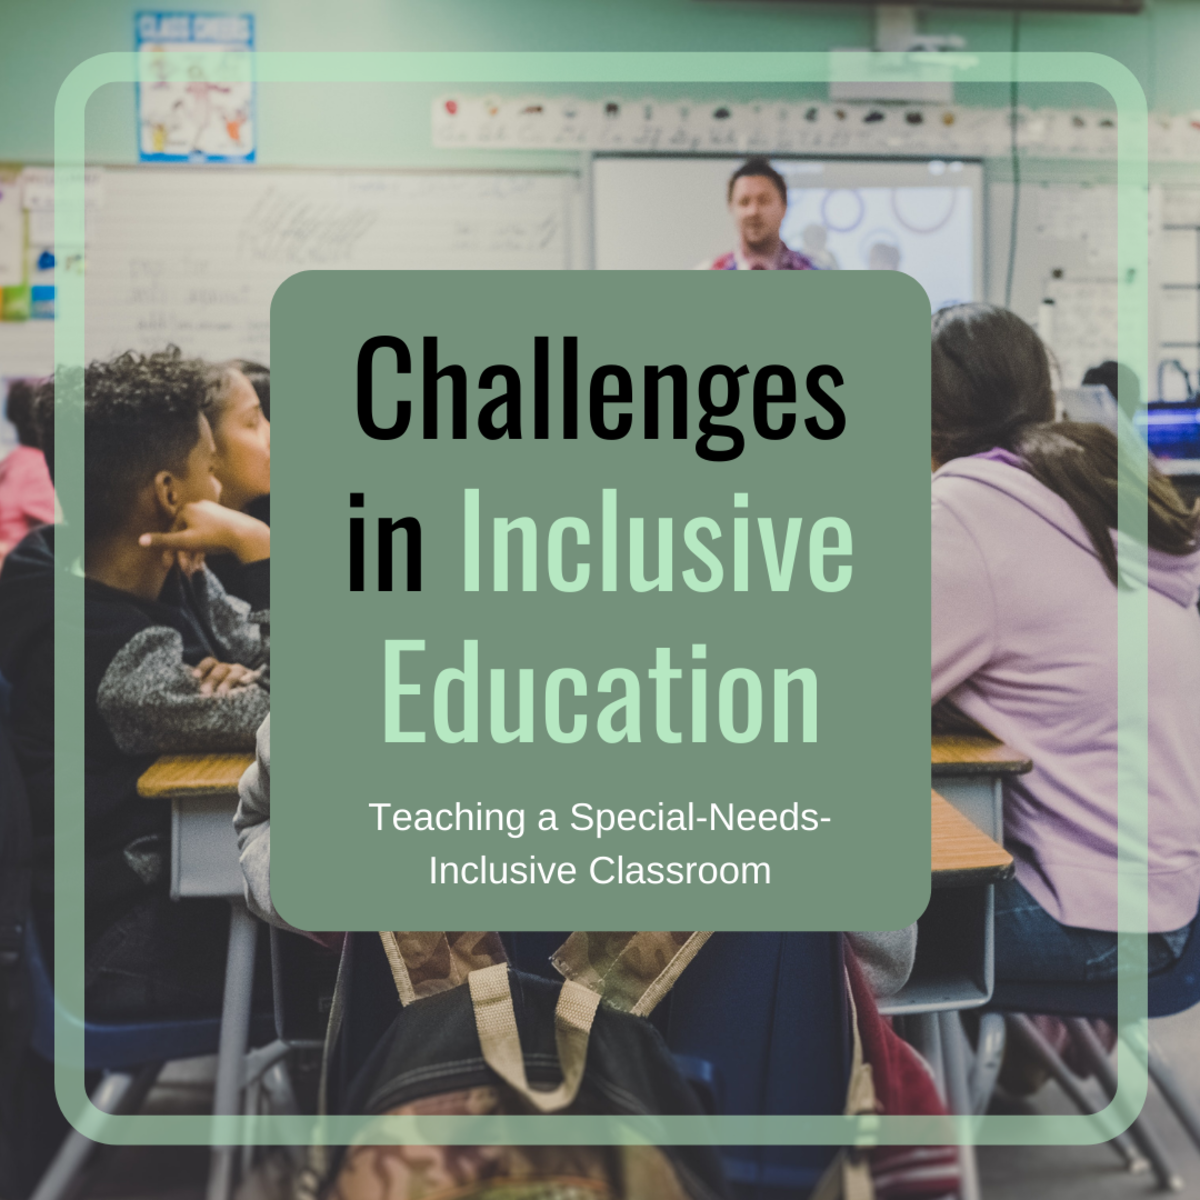 Challenges for Teachers in Special-Needs-Inclusive Classrooms